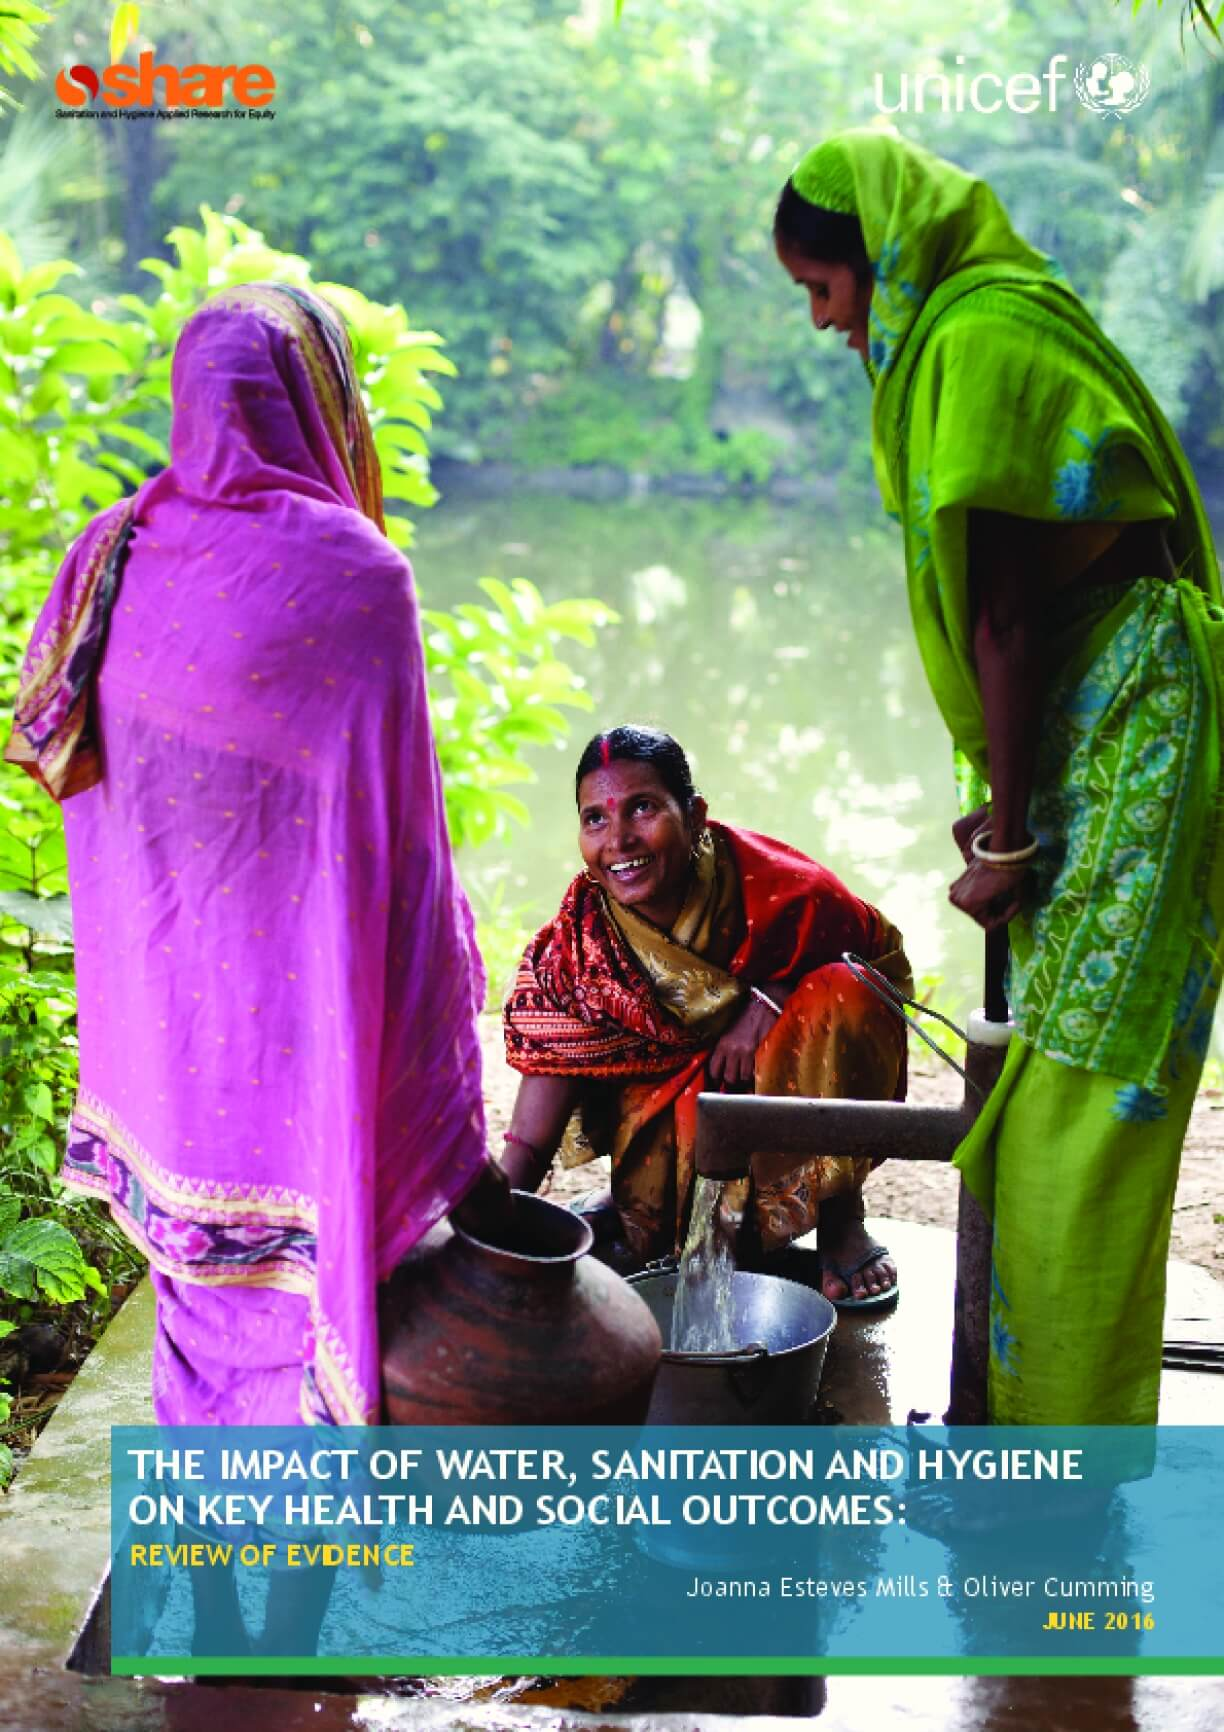 The Impact of Water, Sanitation, and Hygiene on Key Health and Social Outcomes: Review of Evidence